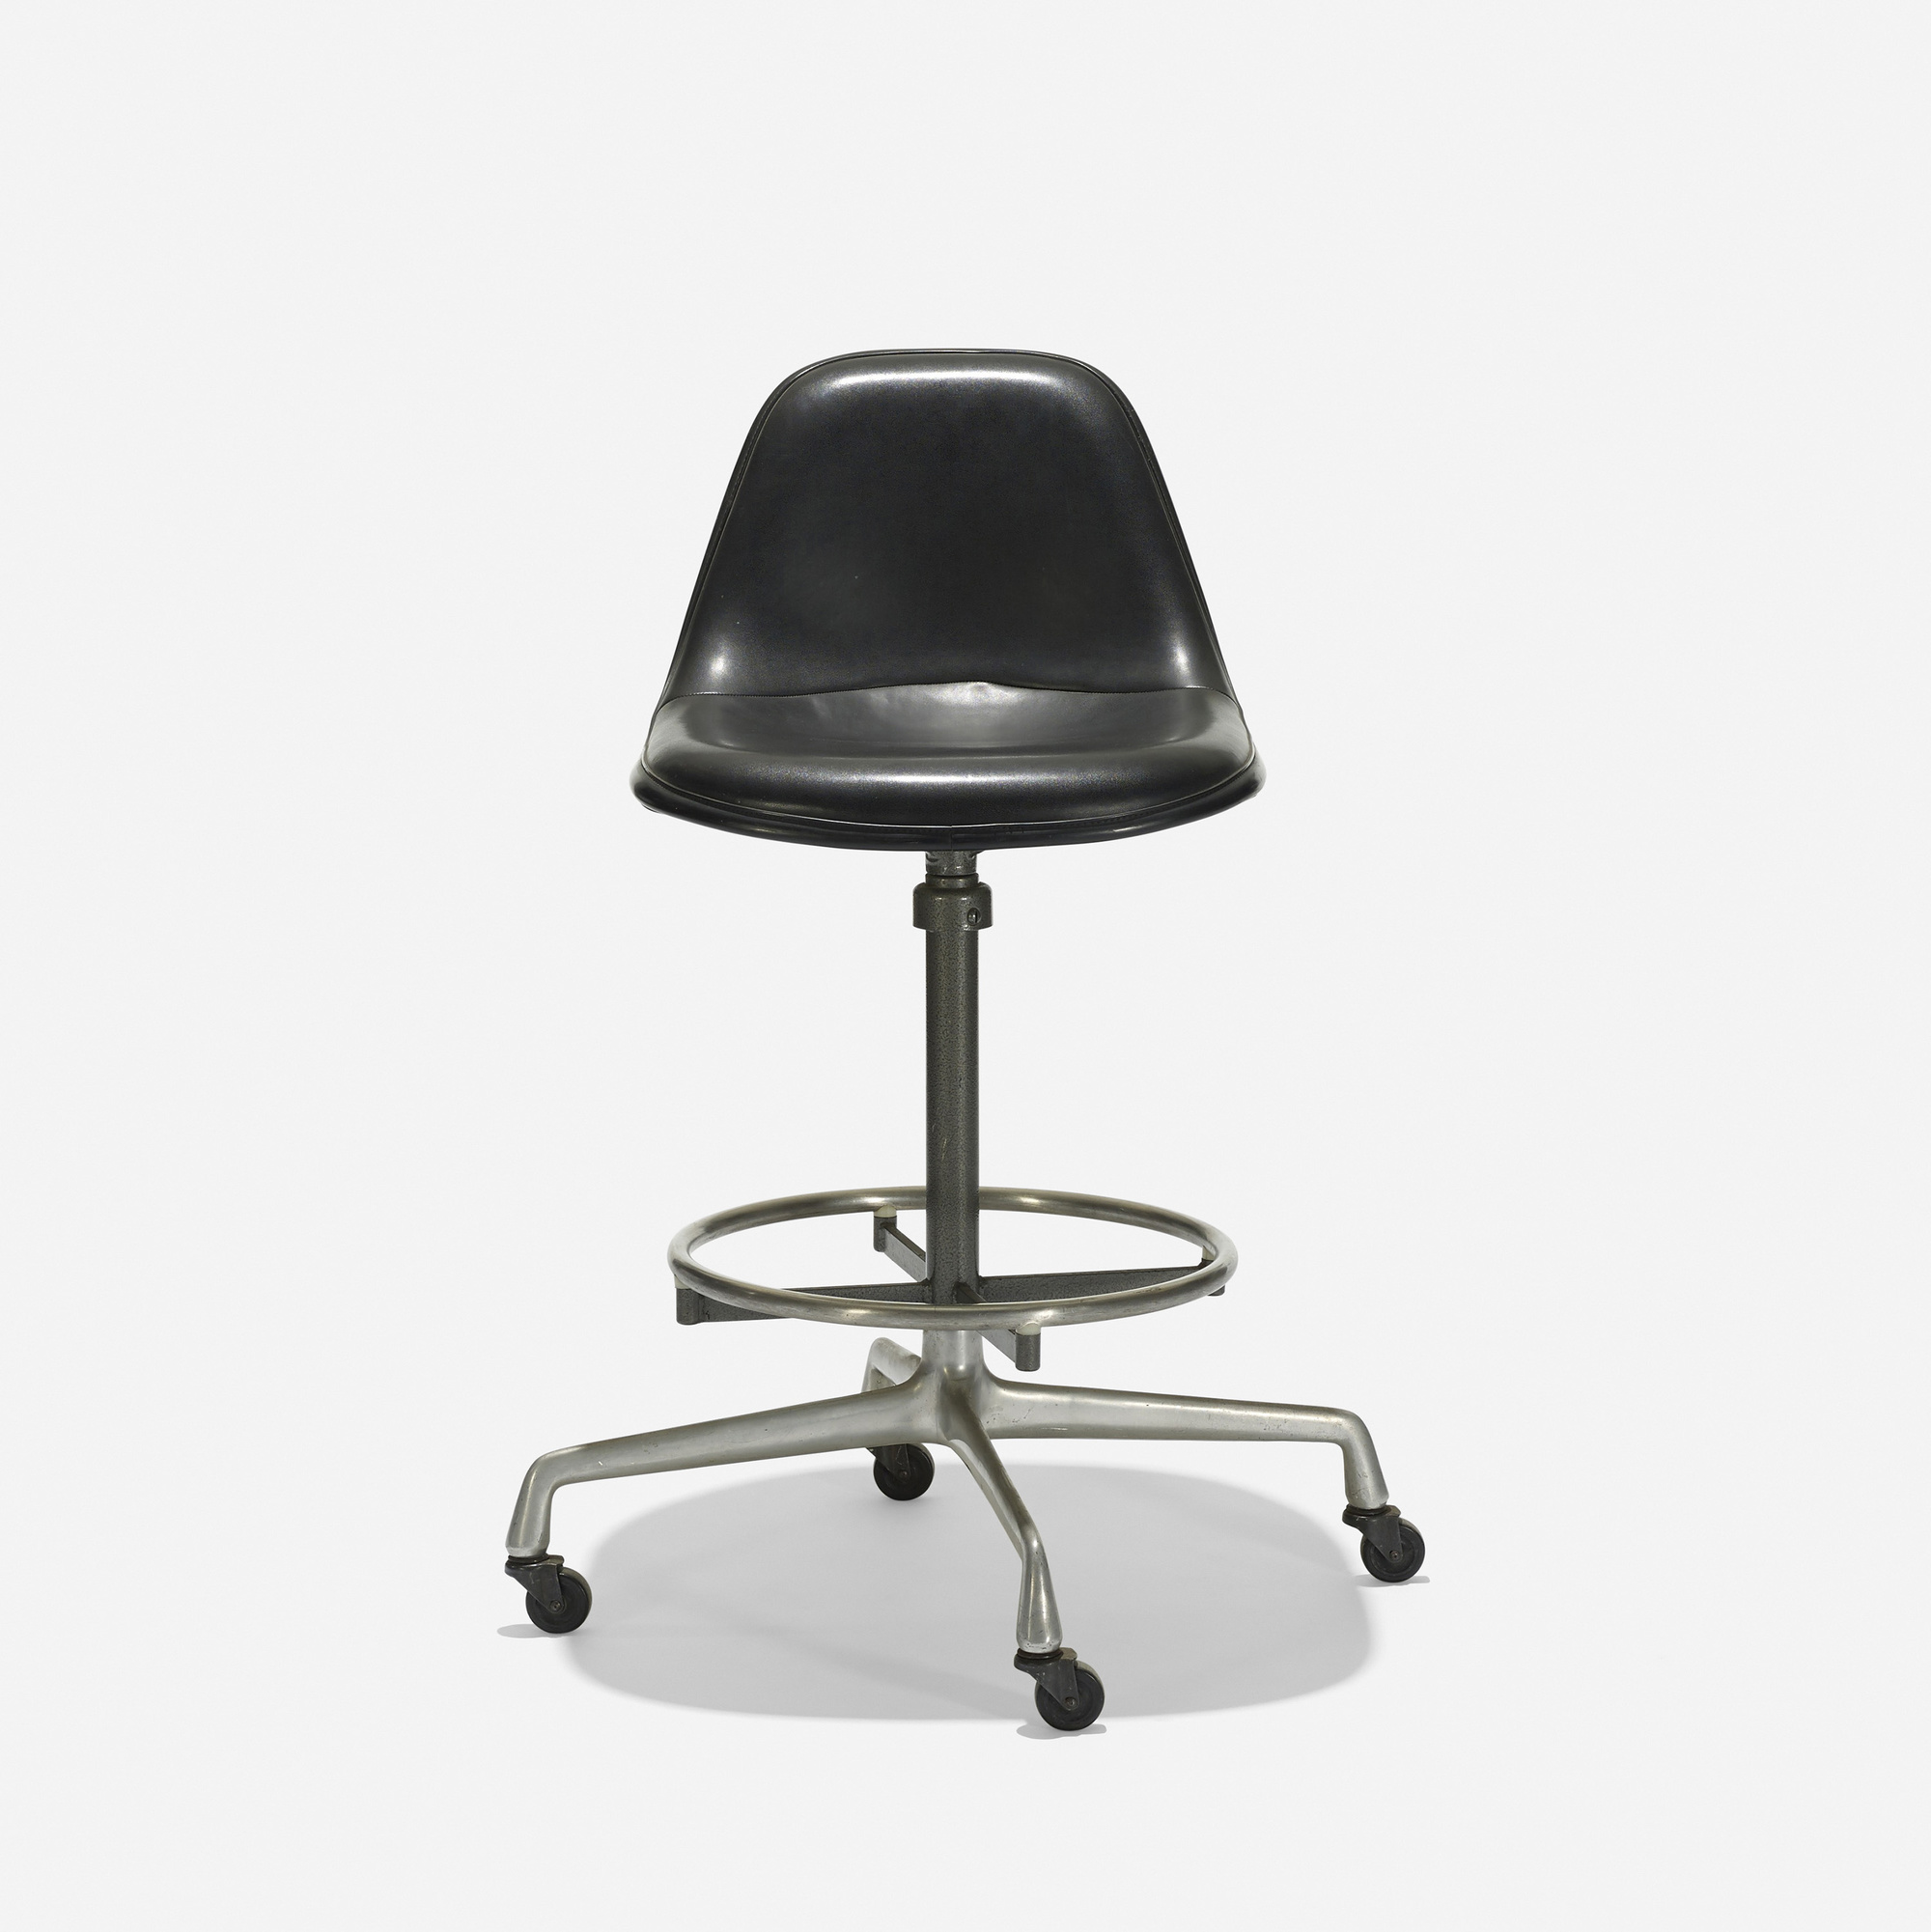 ... 256 Charles and Ray Eames / Drafting chair model EC125 (2 of 3 & 256: CHARLES AND RAY EAMES Drafting chair model EC125 u003c Eames ...